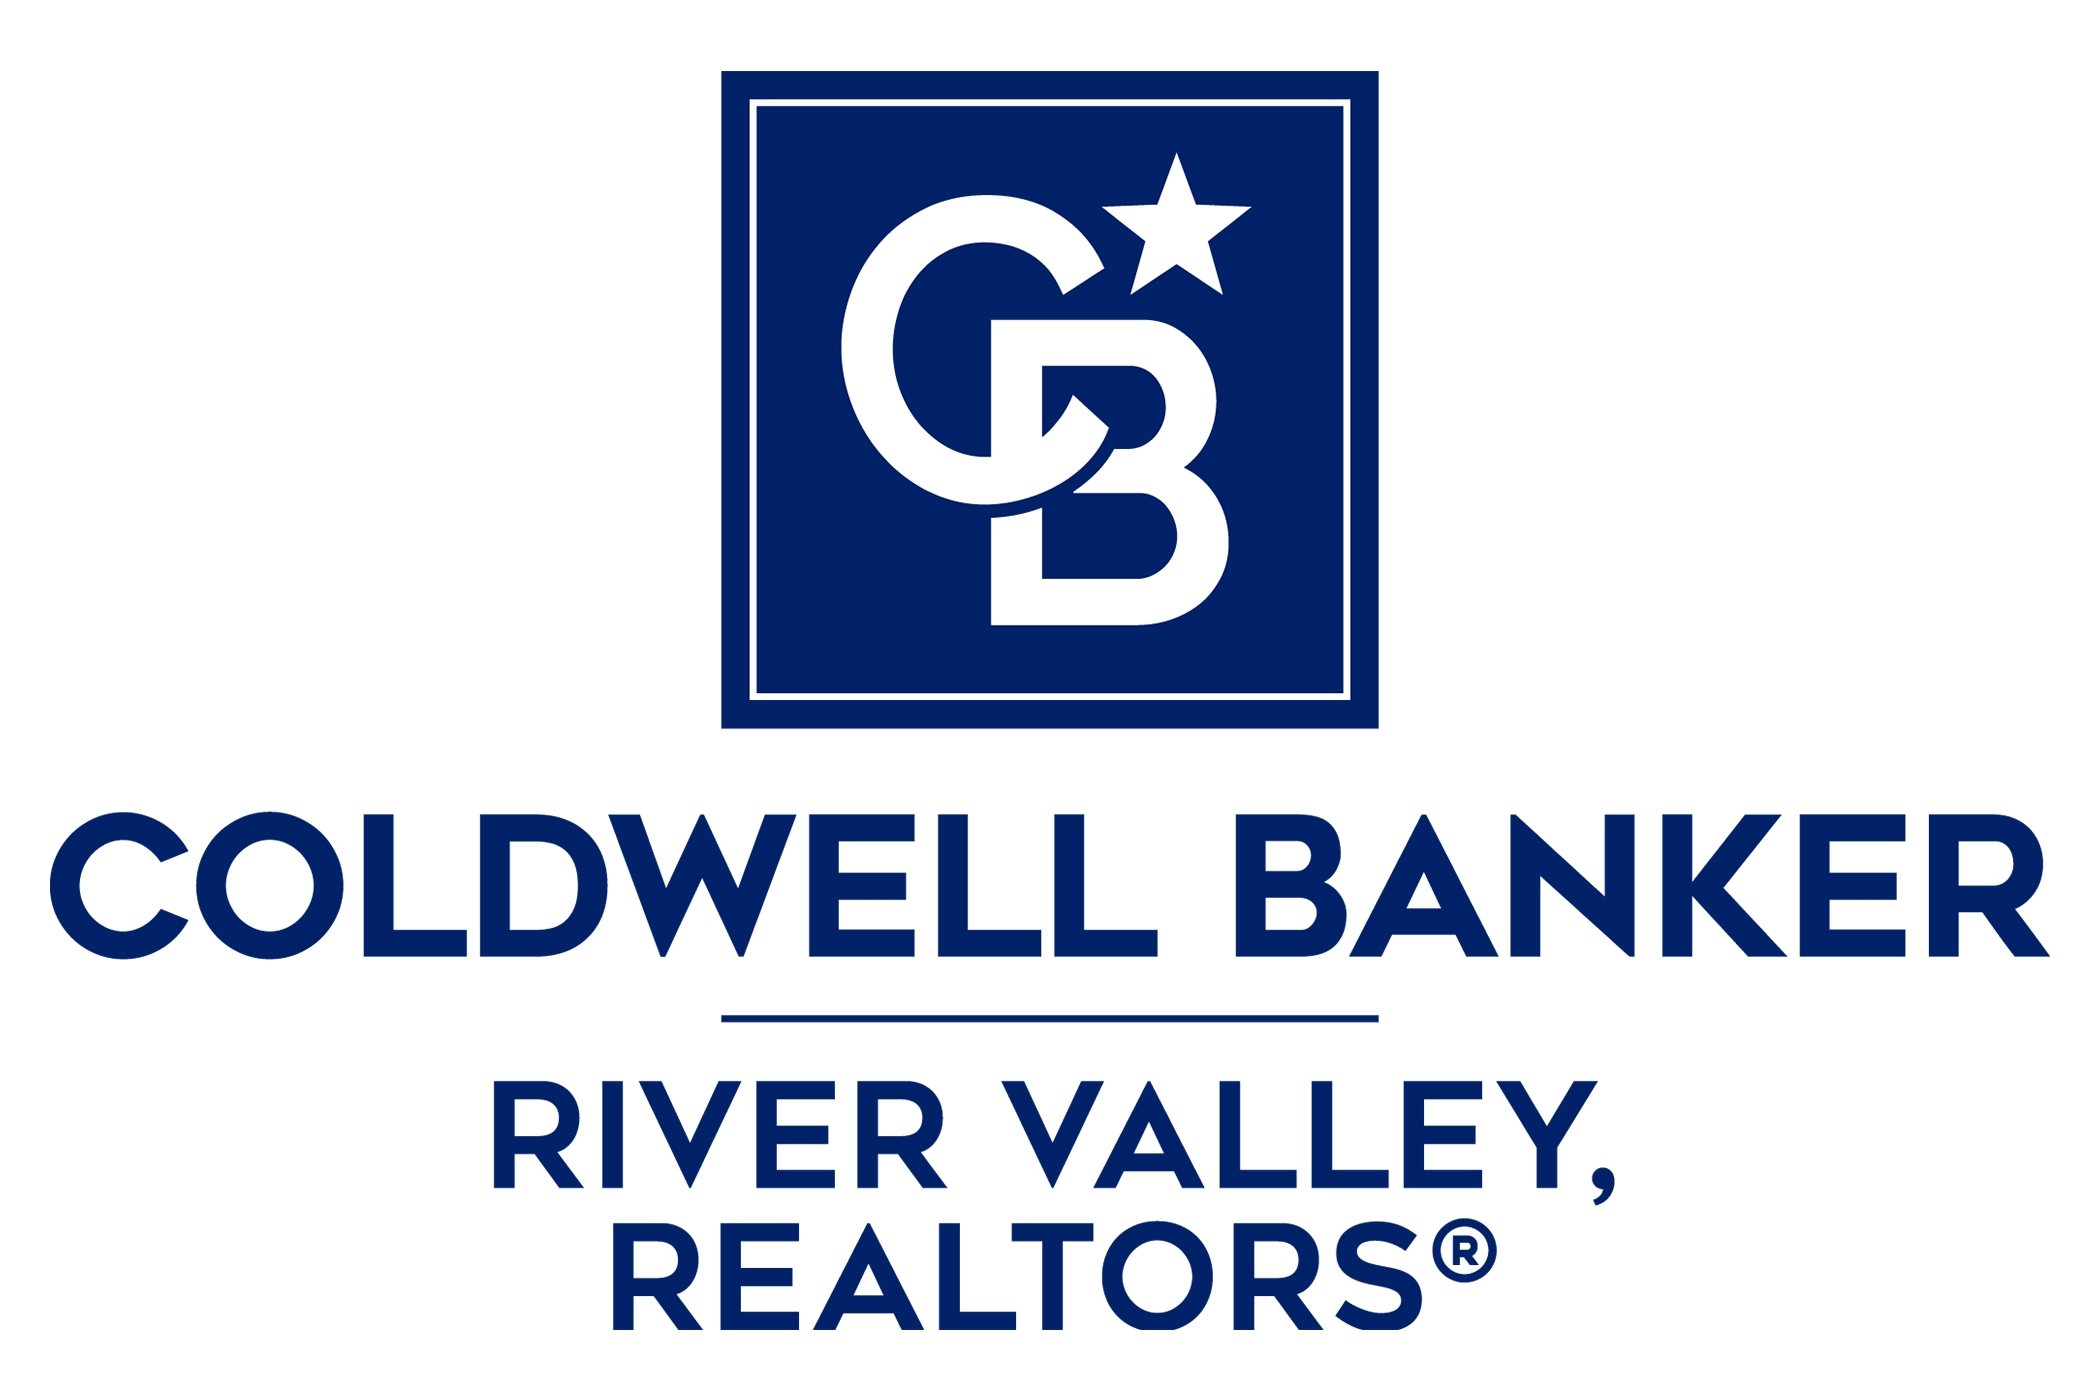 Adam Weissenberger - Coldwell Banker River Valley Realtors